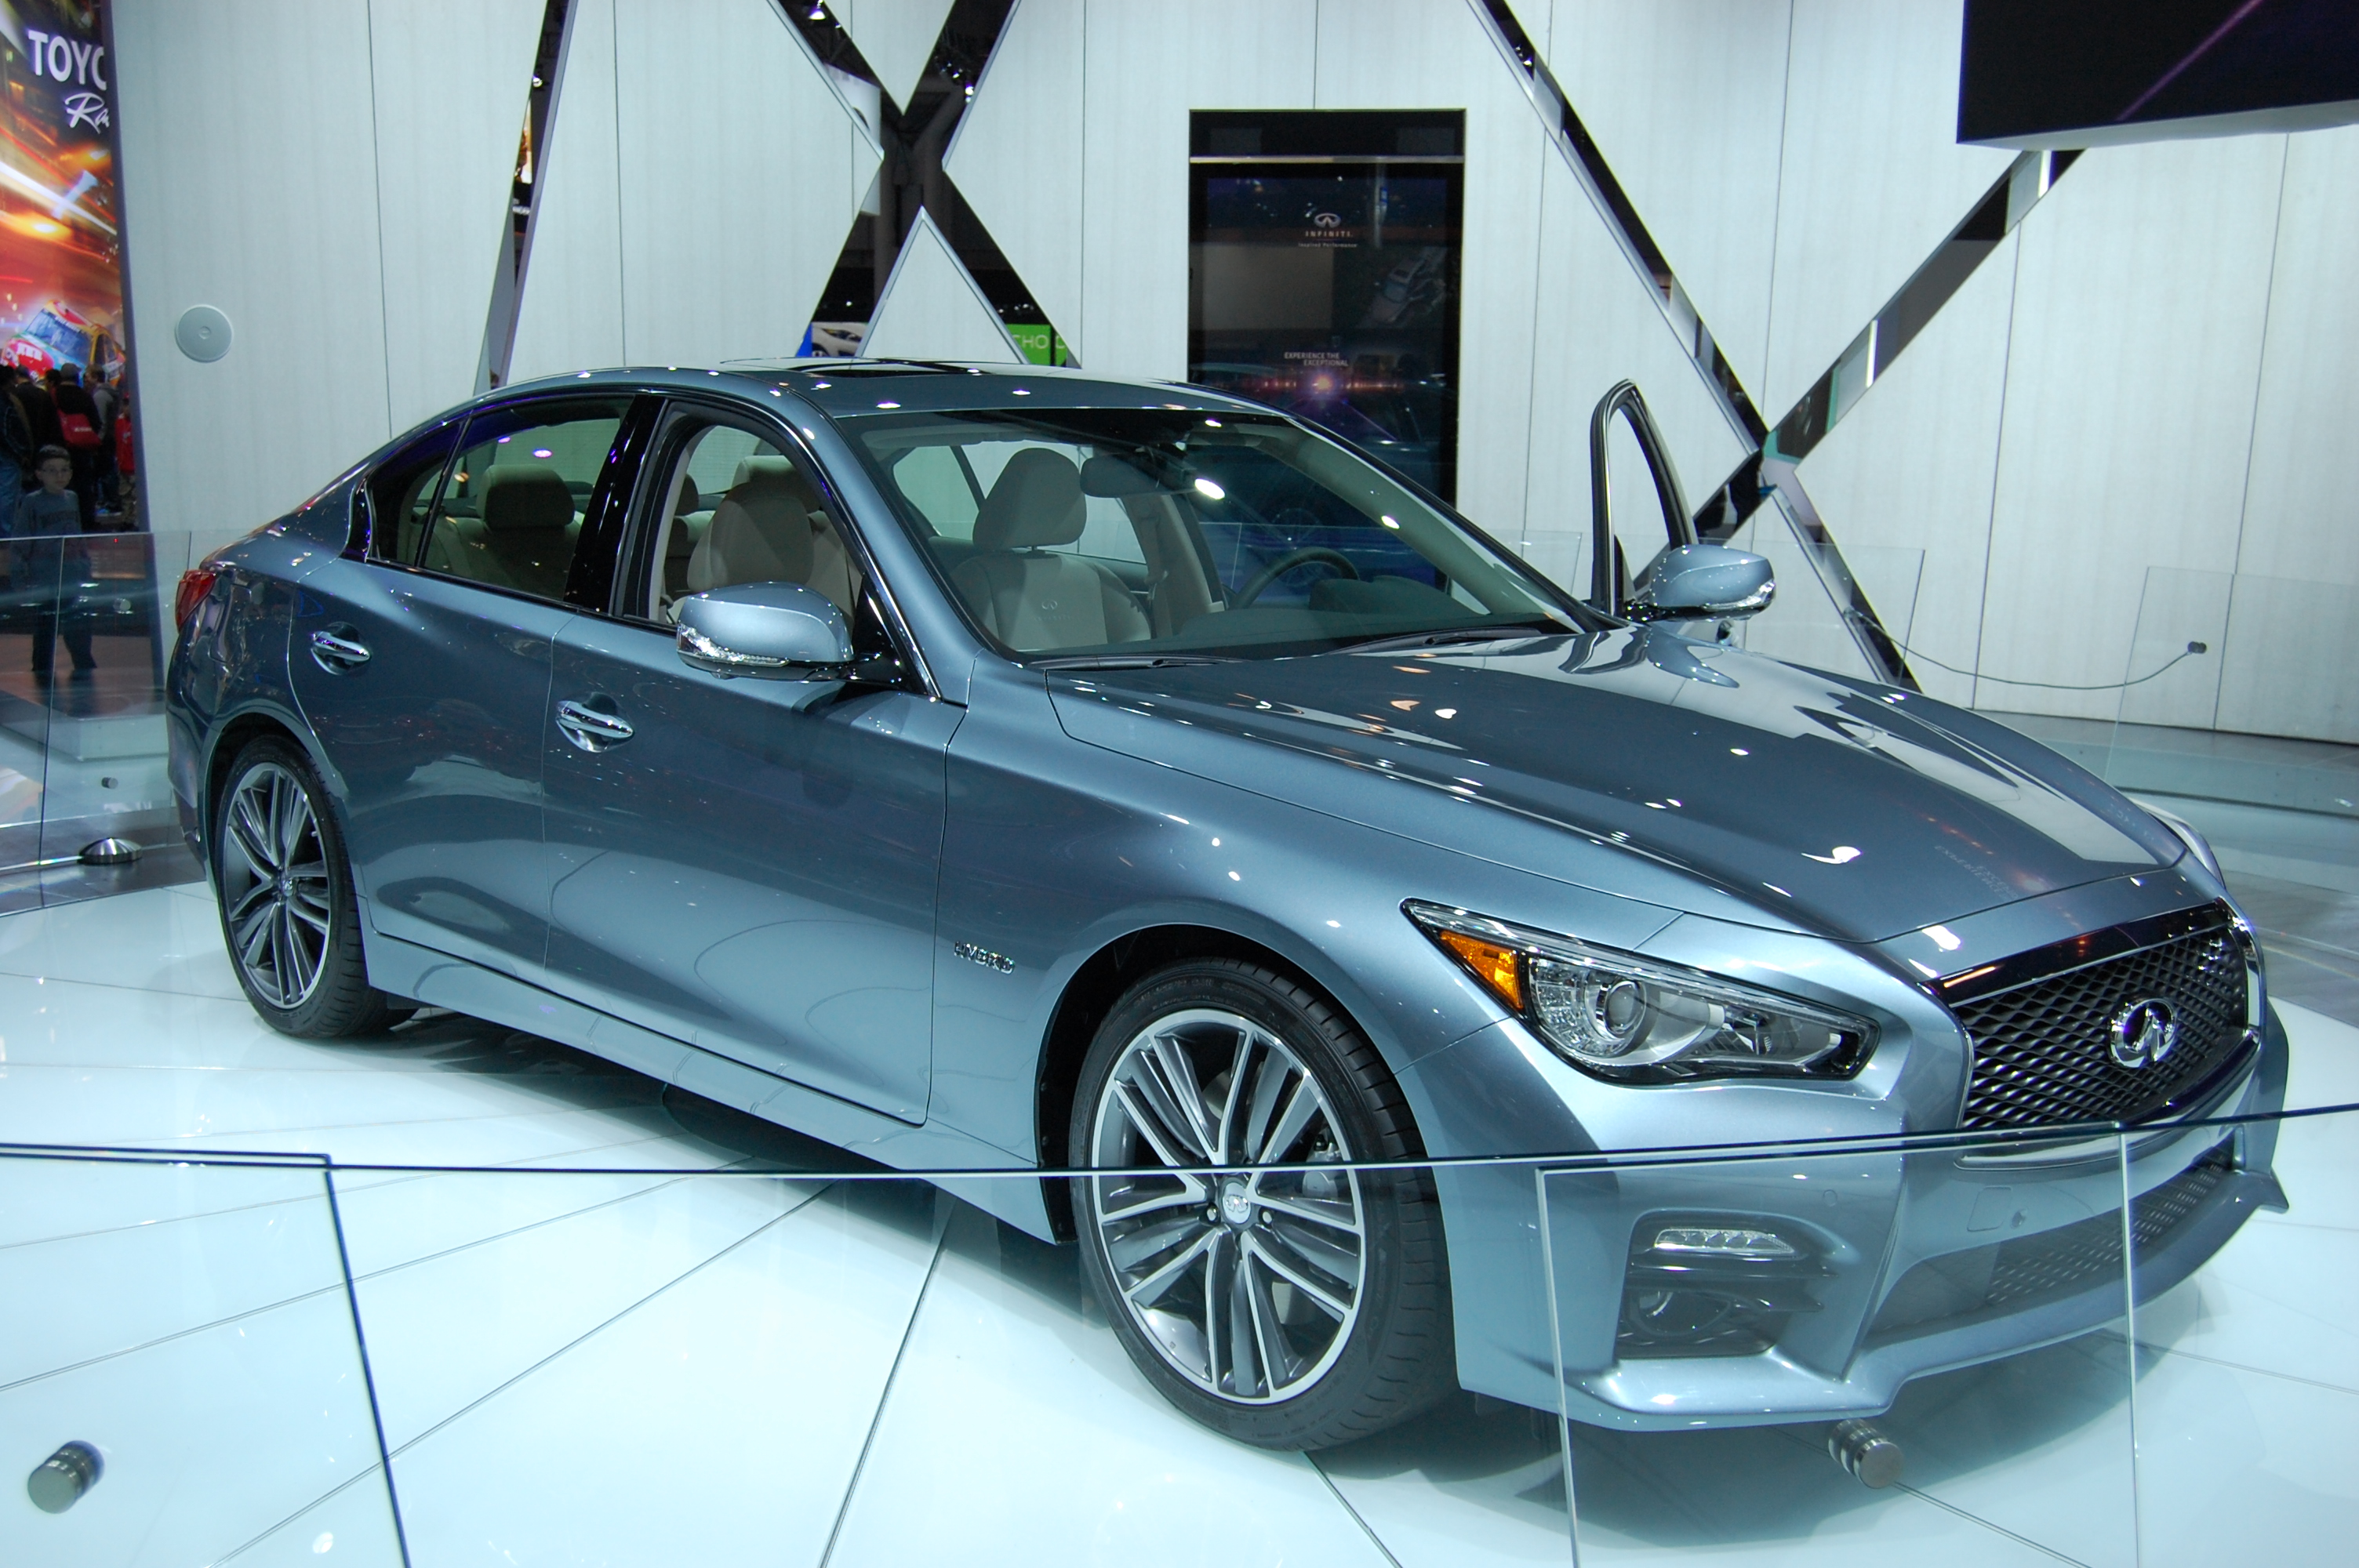 2014 infiniti q50 hybrid sport ii by hardrocker78 on. Black Bedroom Furniture Sets. Home Design Ideas